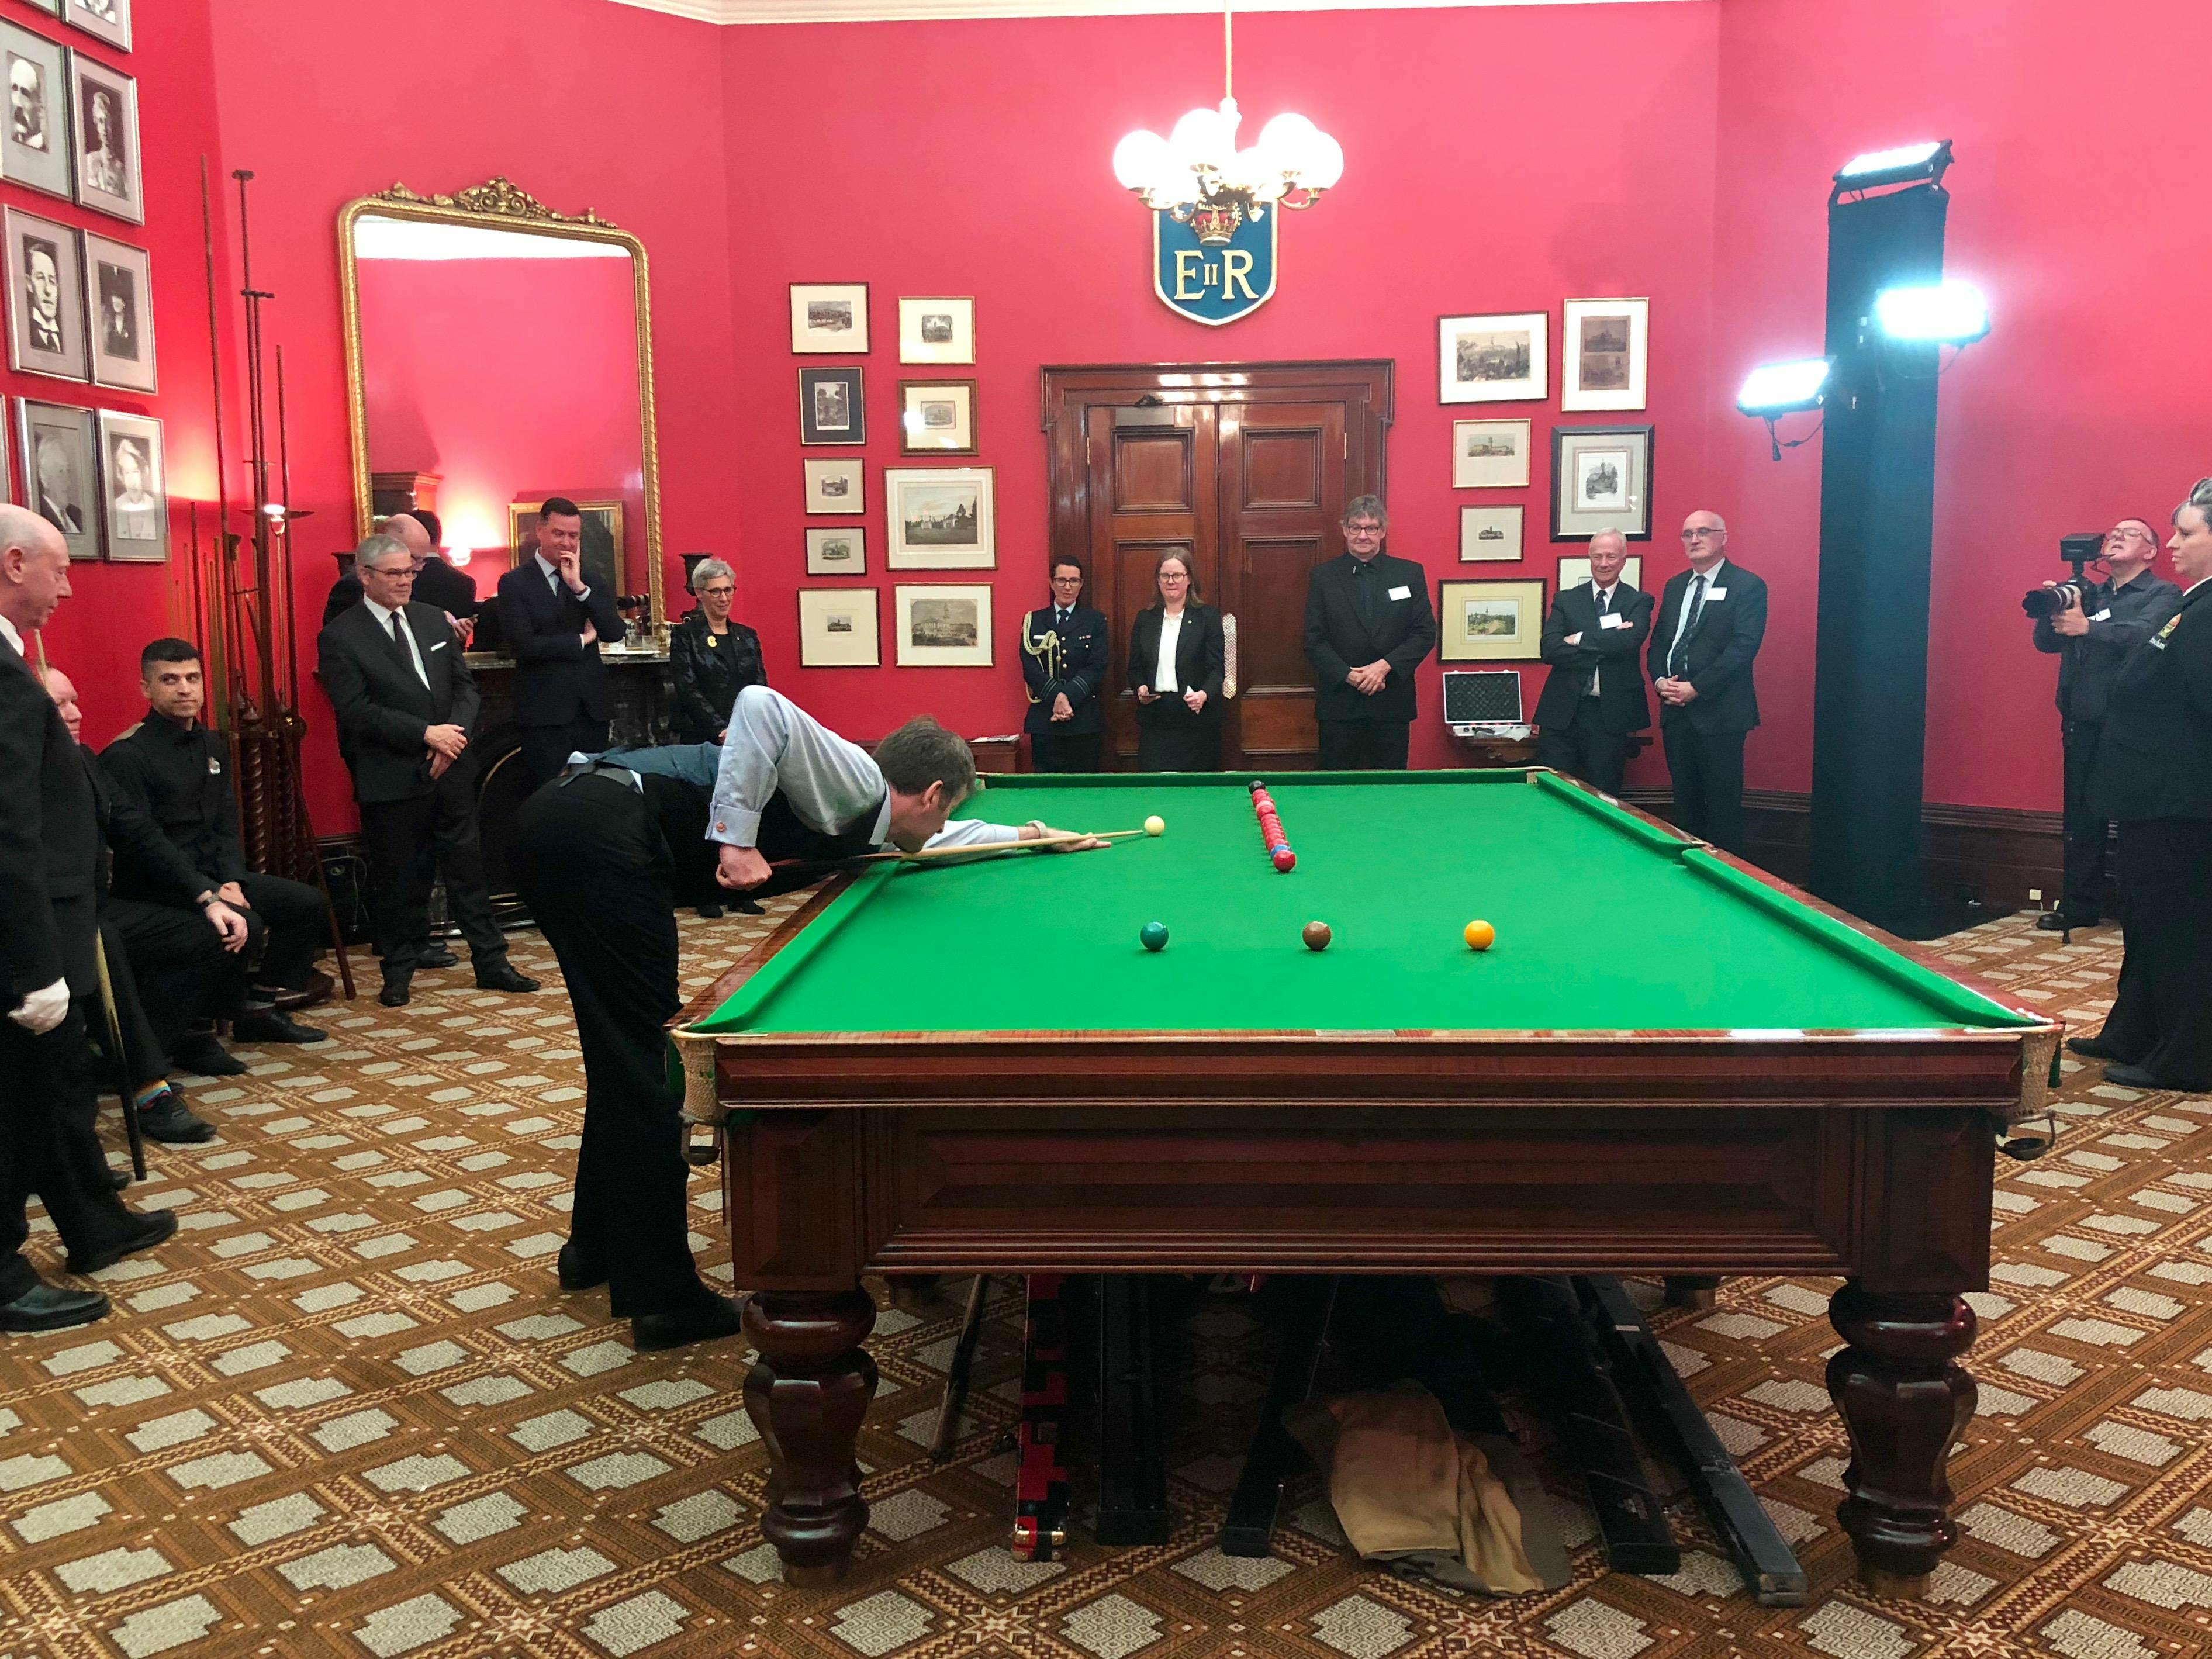 World Number One billiards player Peter Gilchrist plays at Government House.